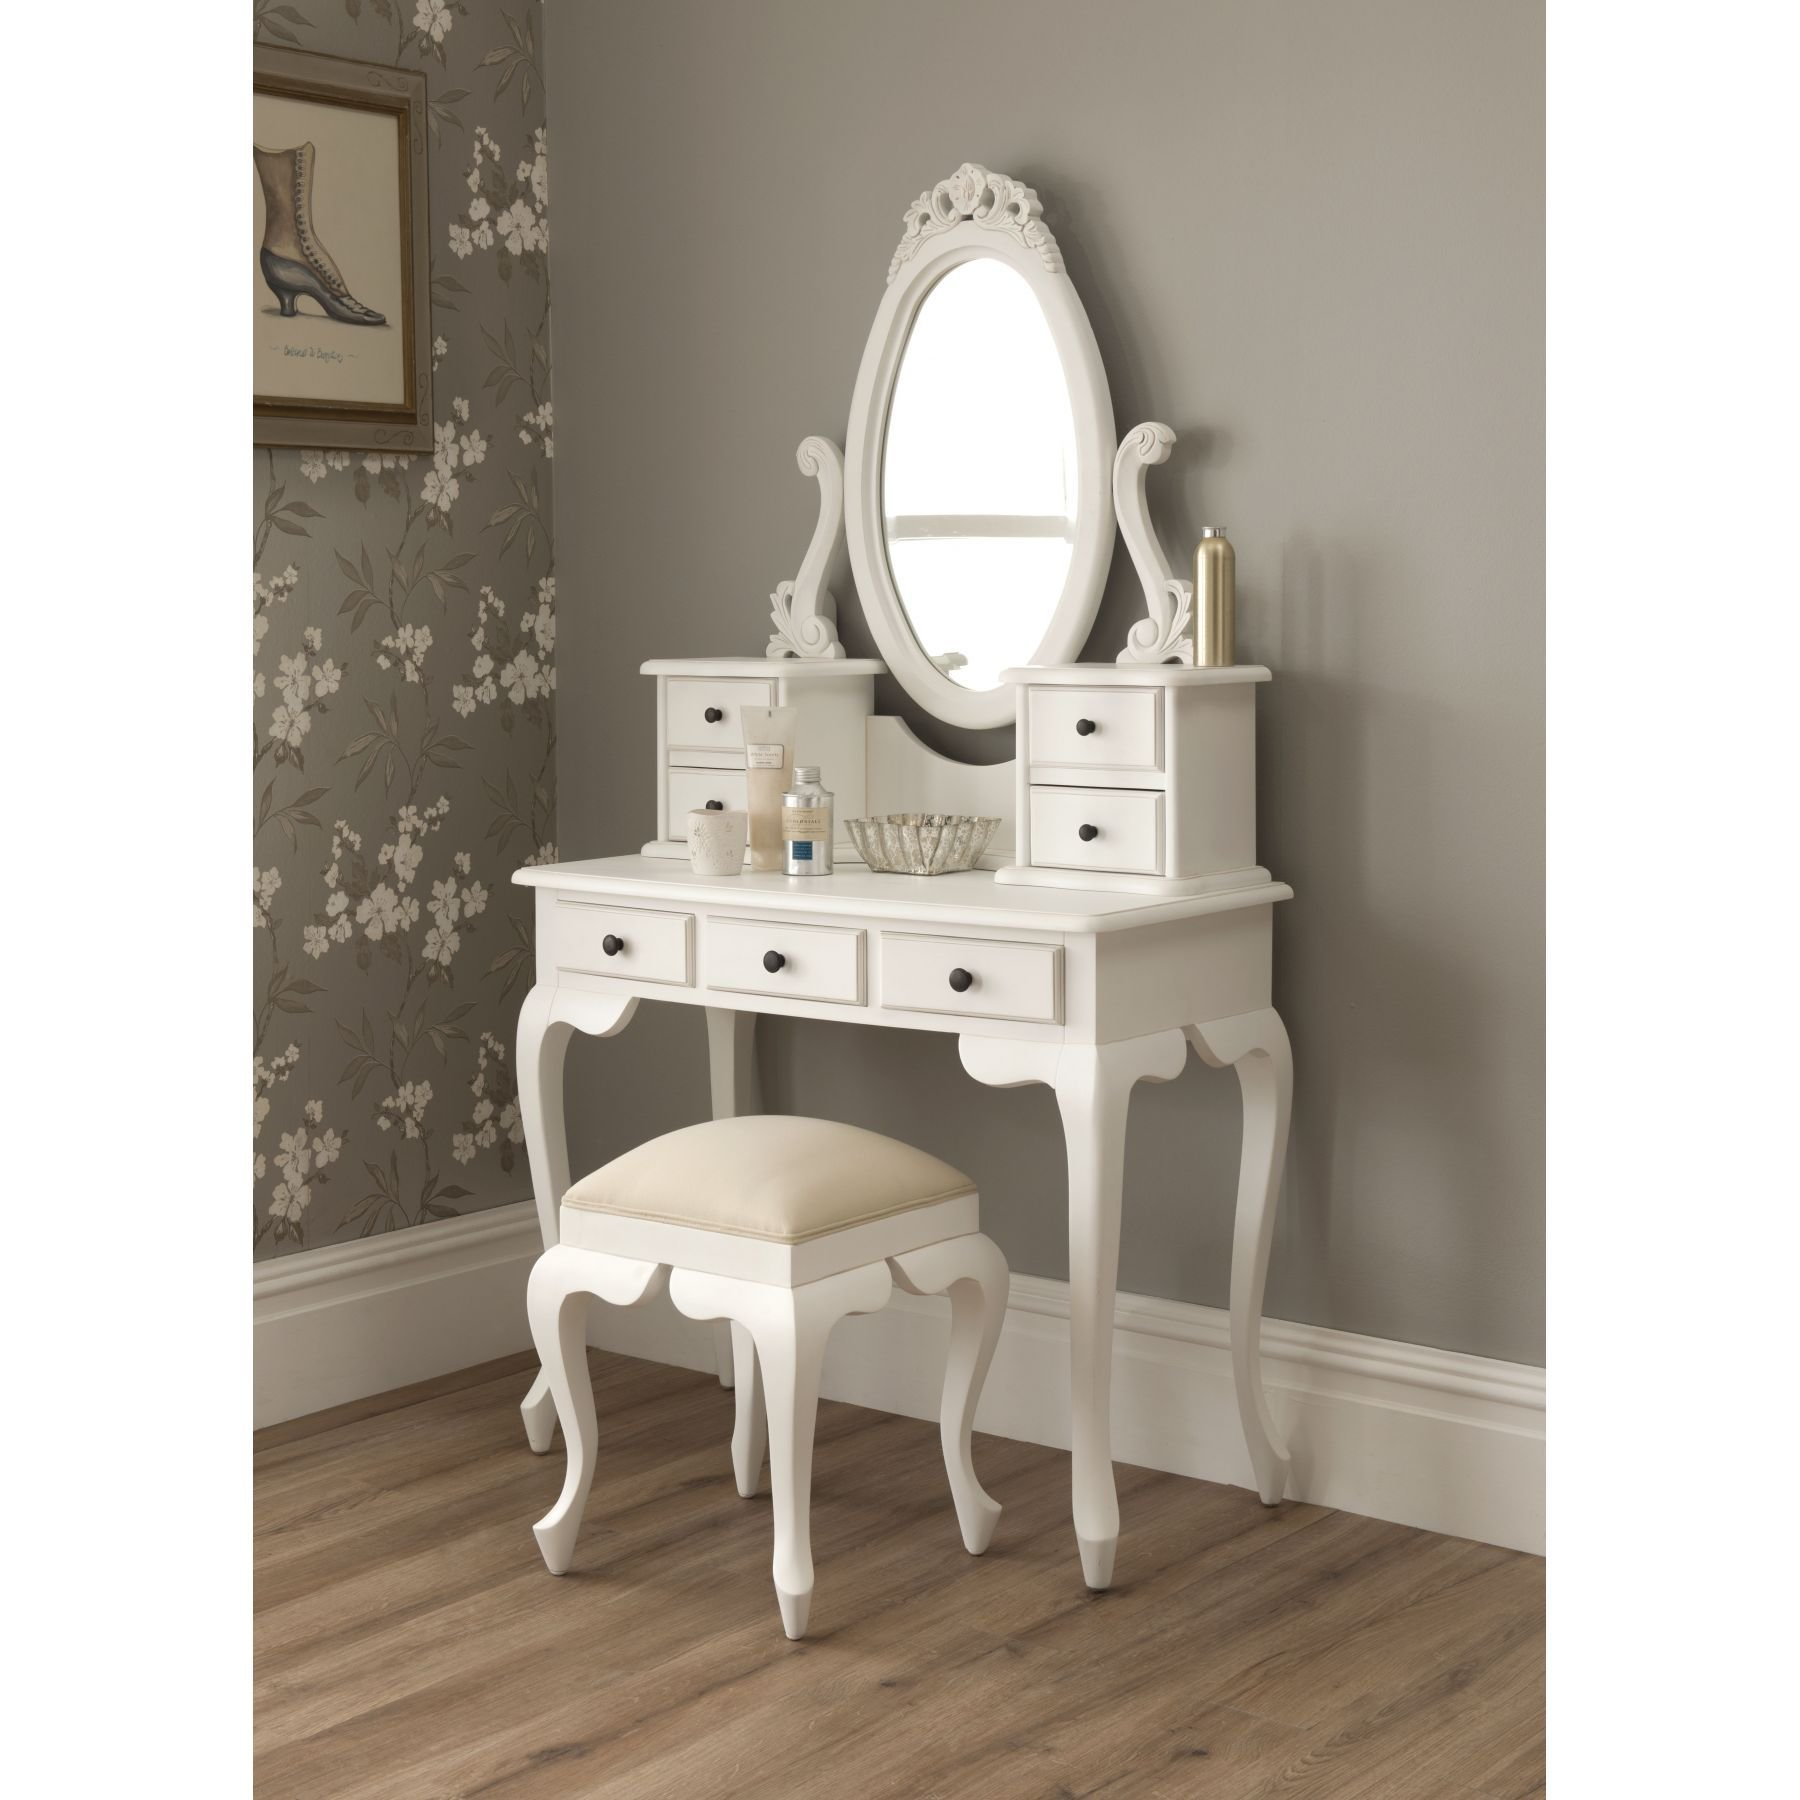 Best Great Presence Of Bedroom Vanity And Setting In Minimalist With Pictures